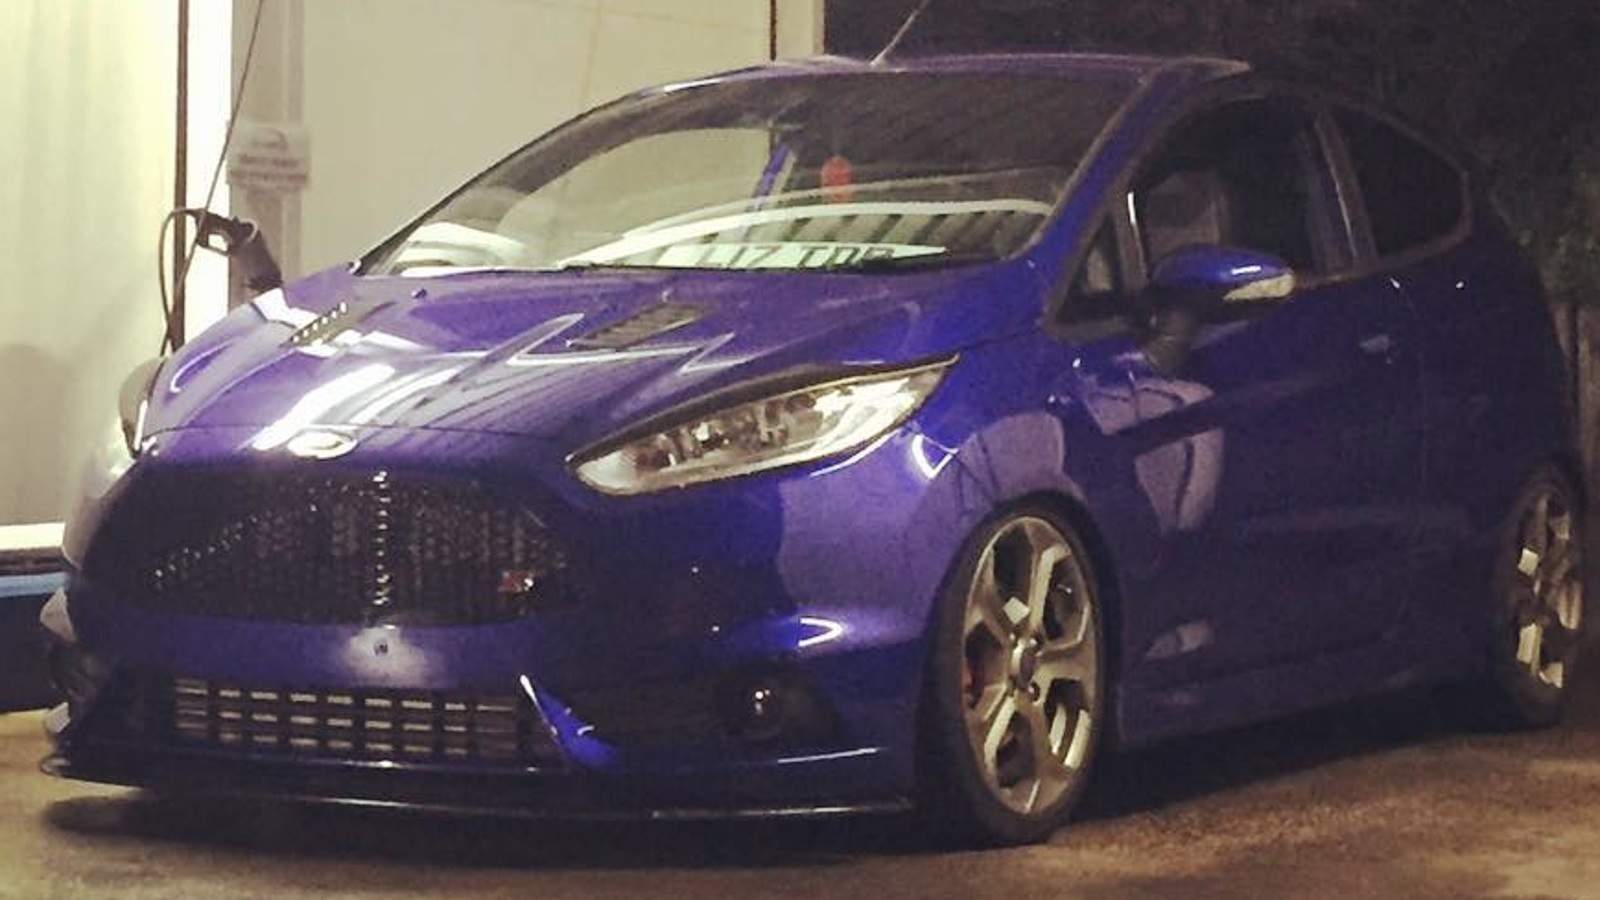 Ford Fiesta St Mods Gone Wrong Blamed For Two Mysterious Deaths